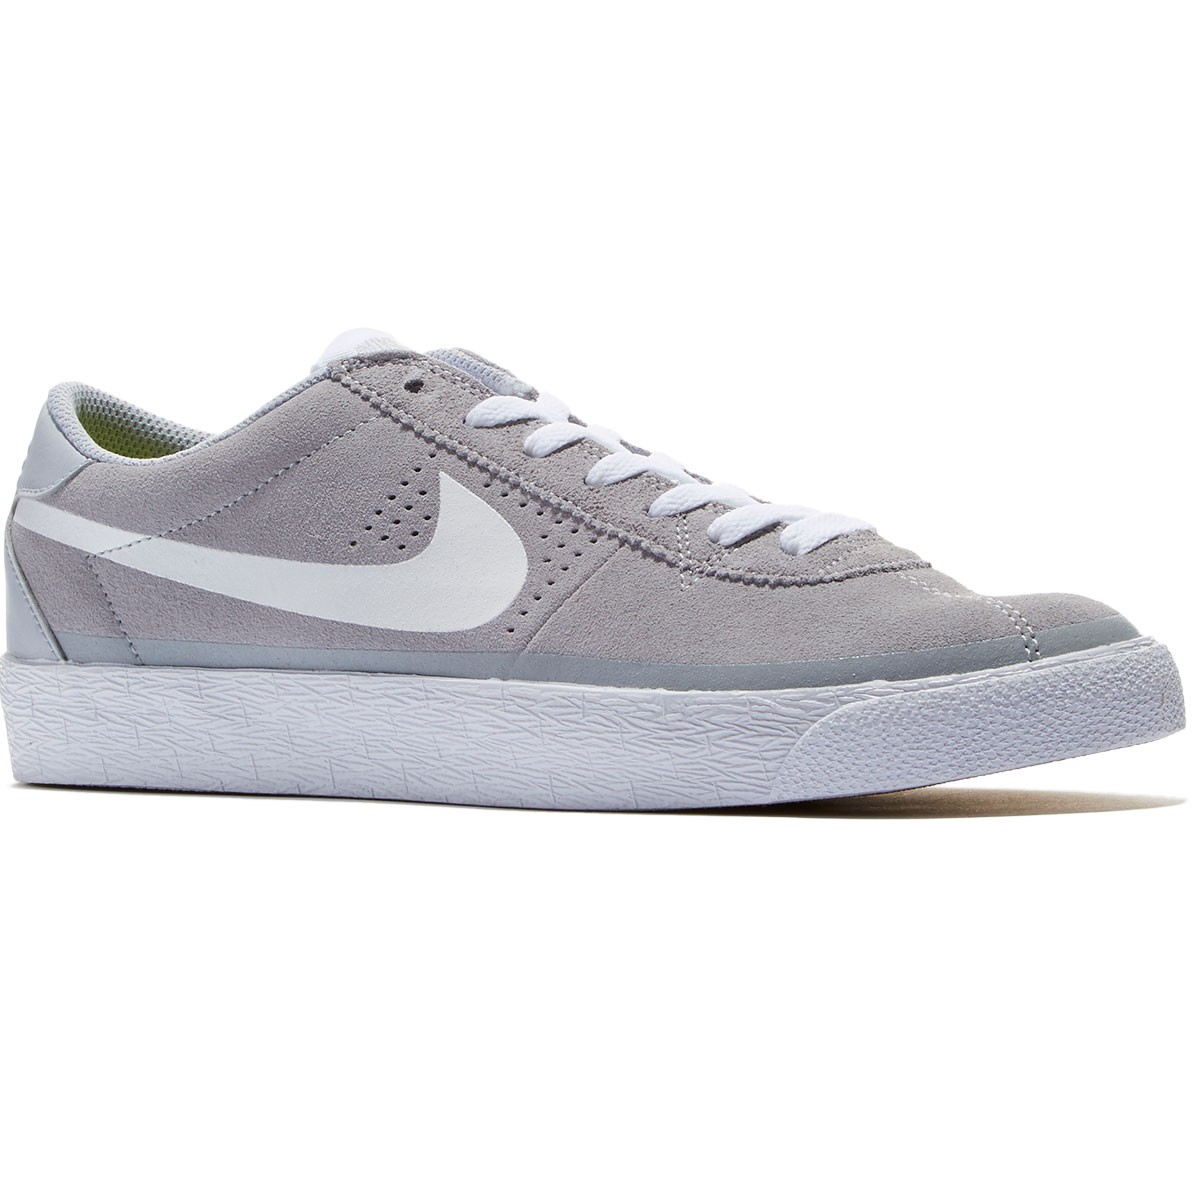 check out 6df0e 6a831 Nike SB Bruin Premium SE Shoes - Wolf GreyGumLight BrownWhite